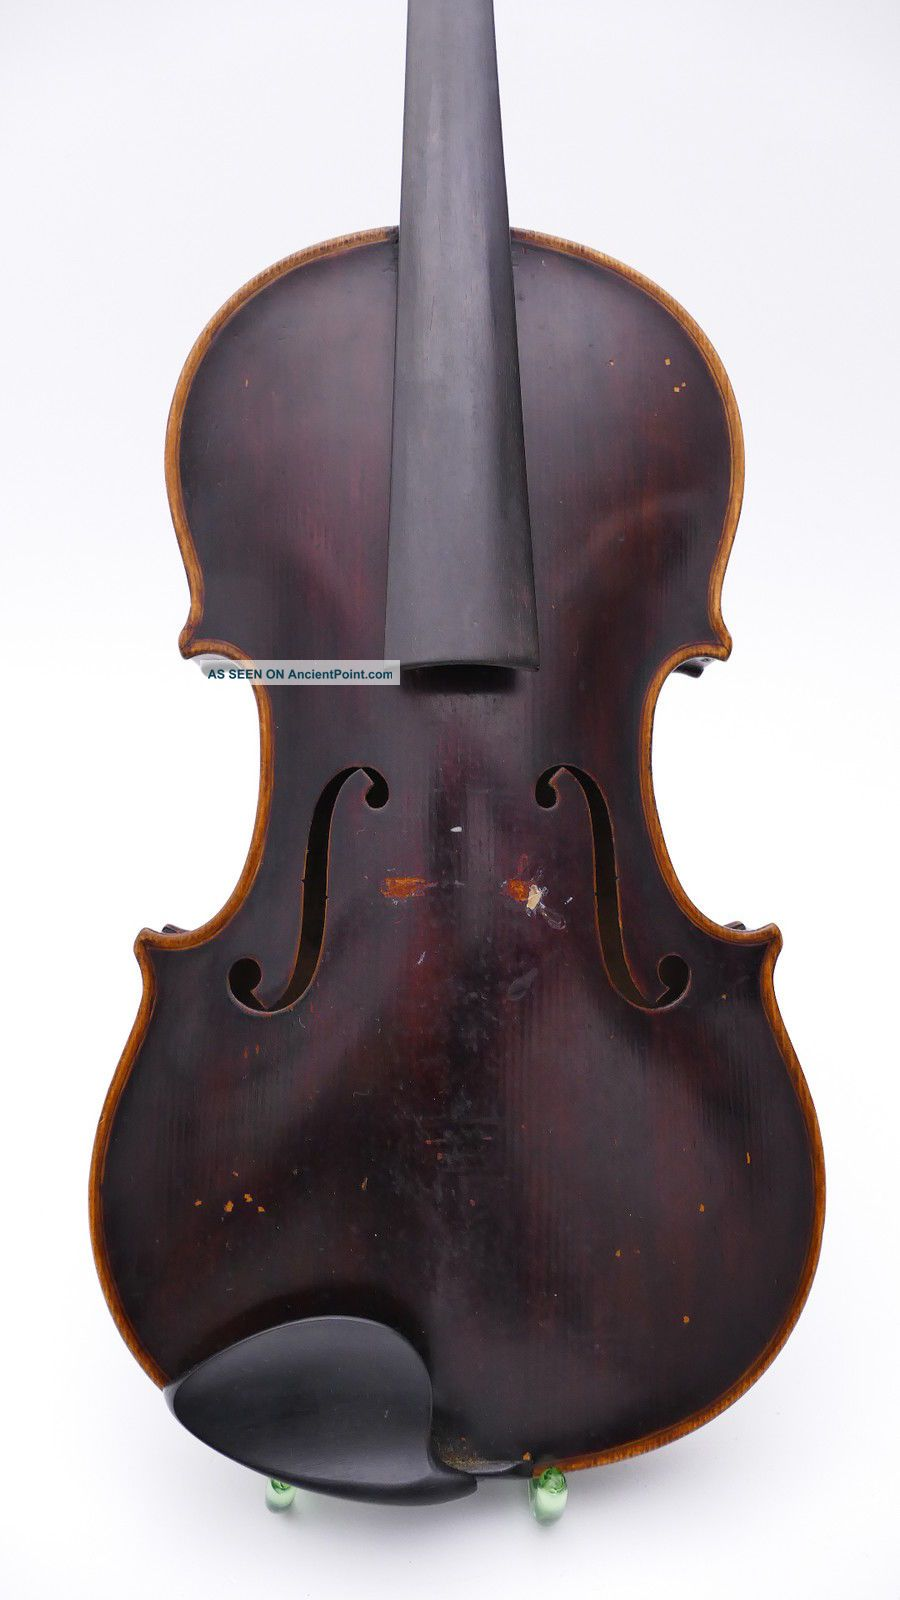 Enricus Ceruti Fecit,  Case Antique Old Violin Violin0 Violine Viola From German String photo